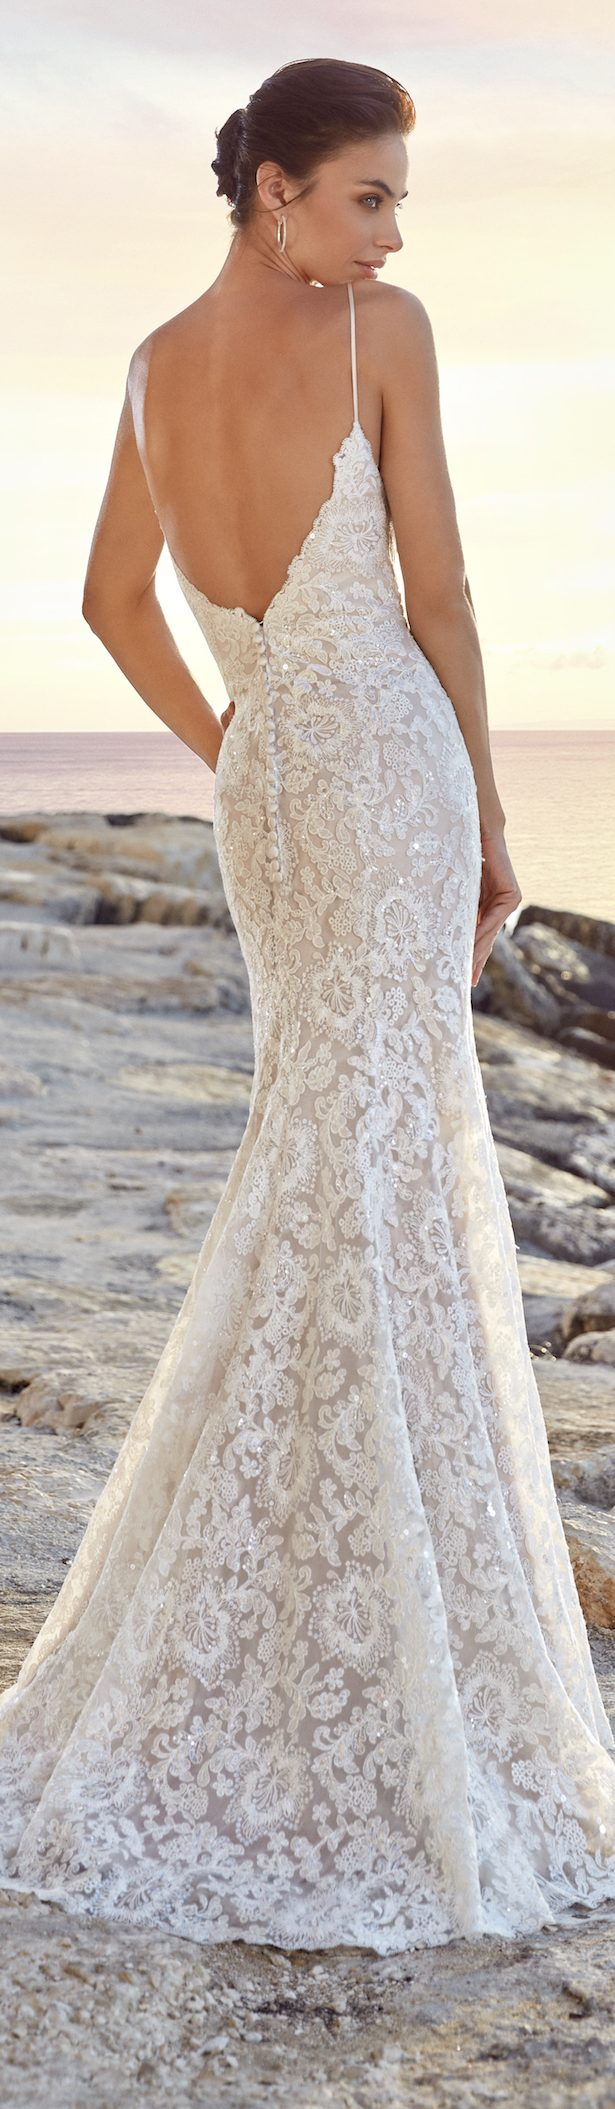 Eddy K Wedding Dress Collection Dreams 2018